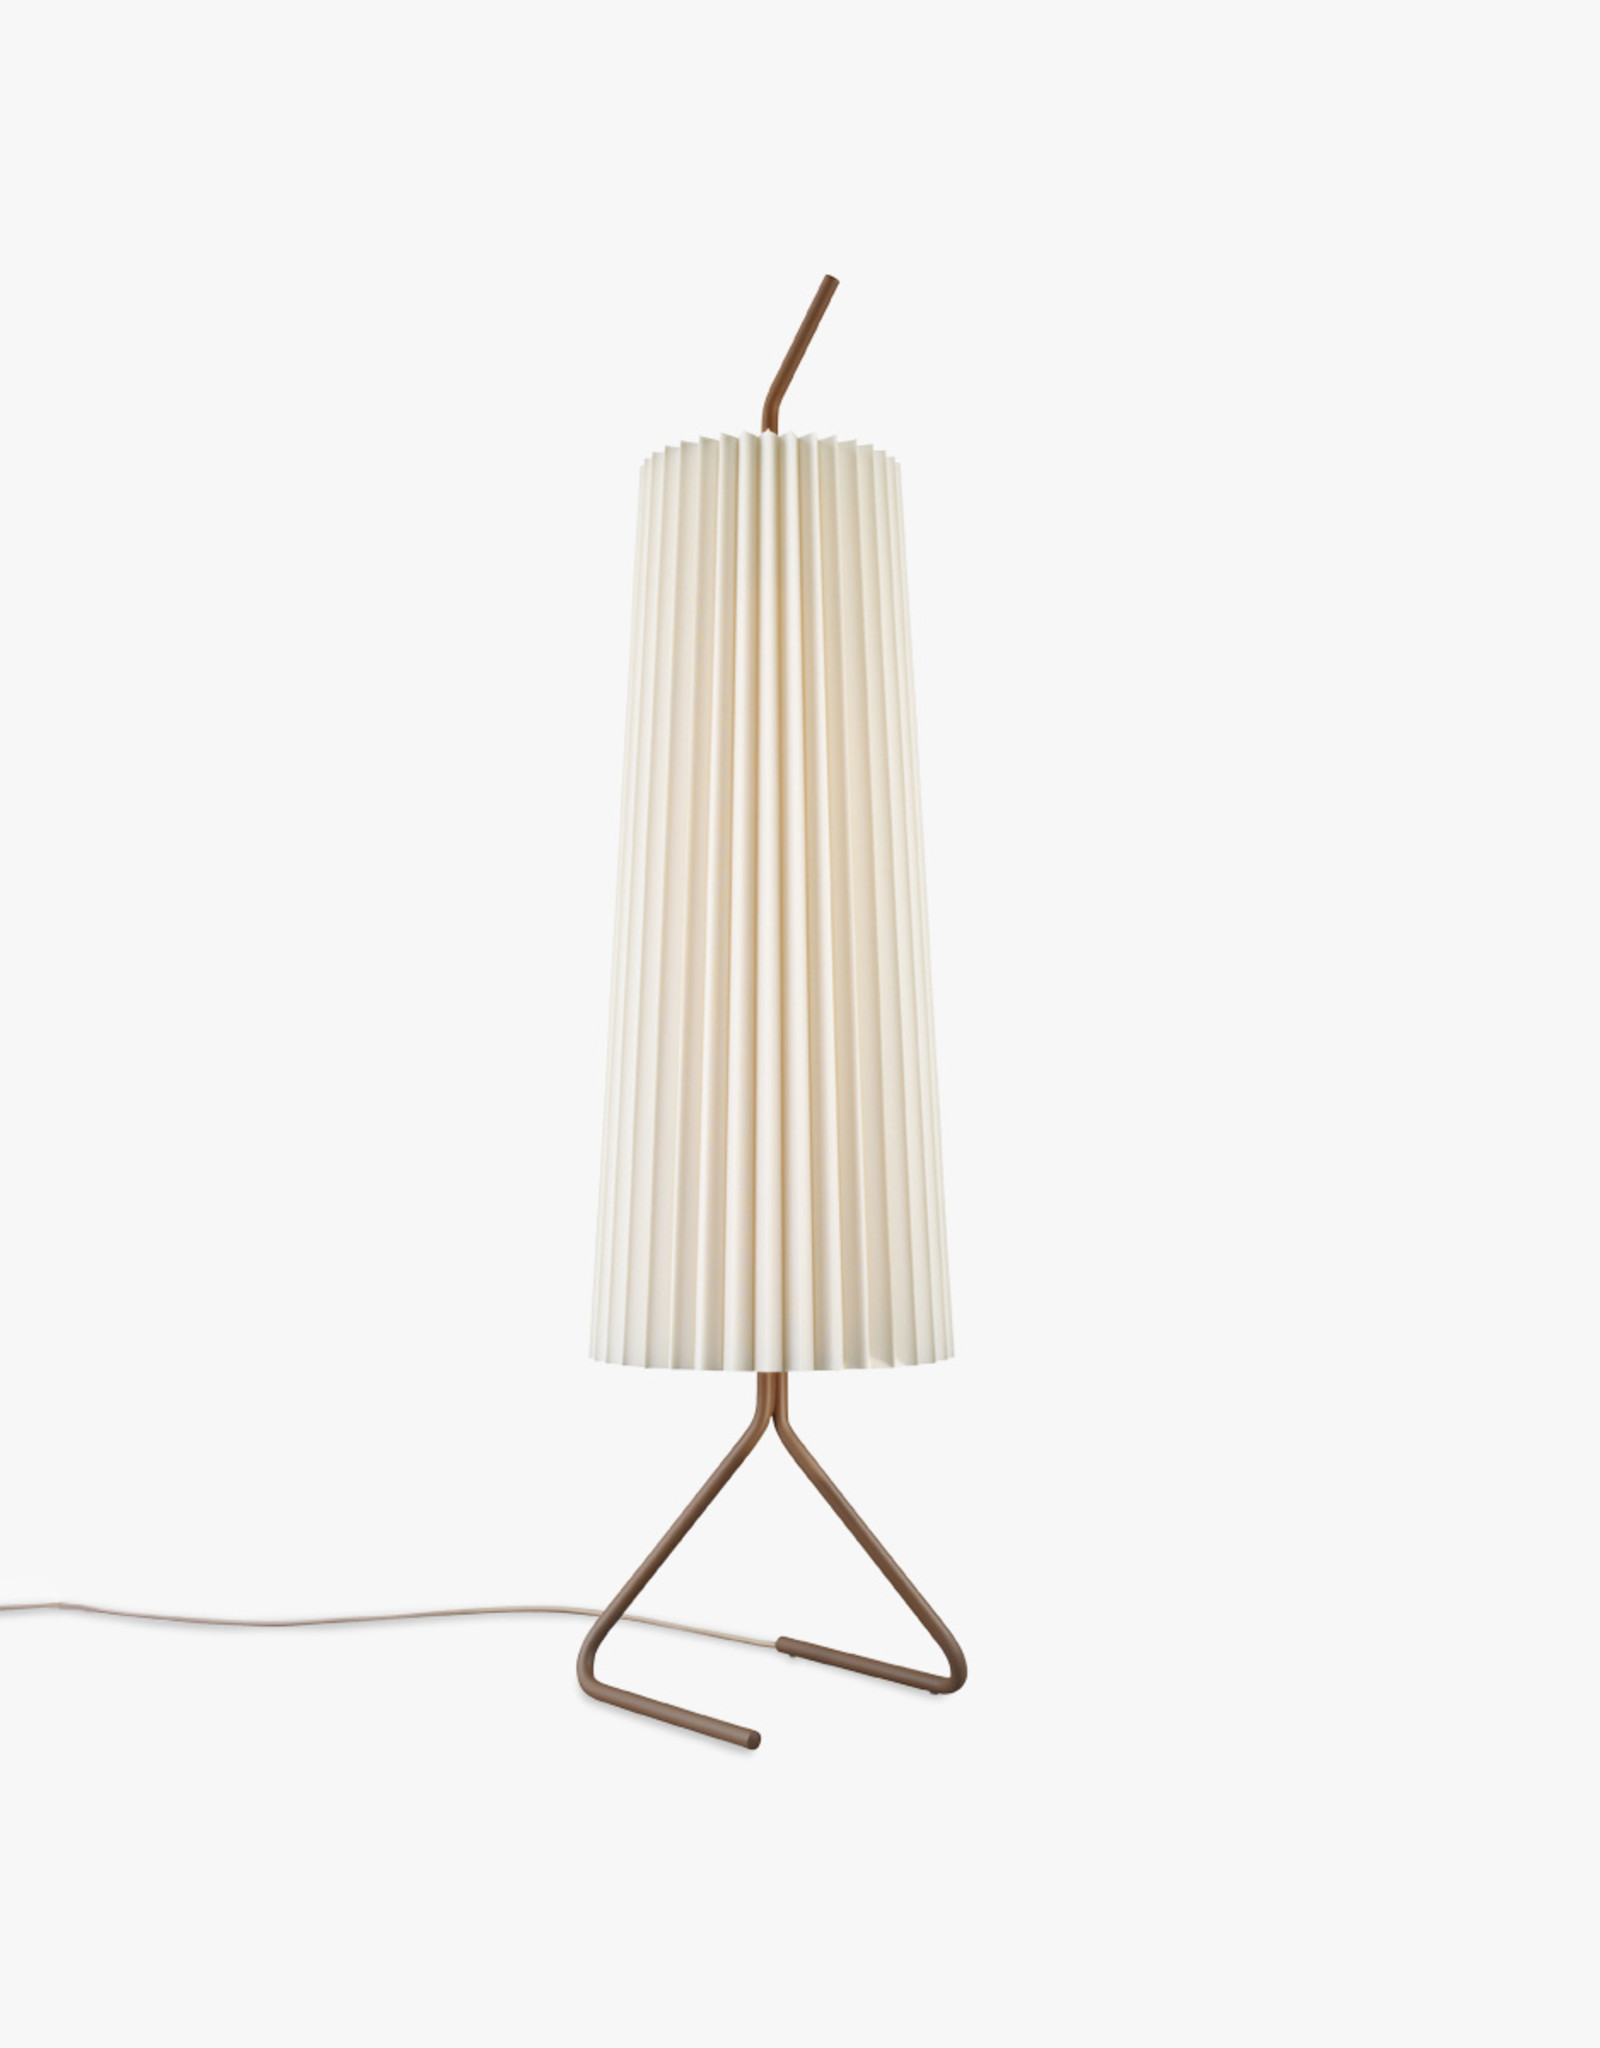 Fliegenbein SL floor light by J.T. Kalmar | Brown metal stand | Silk pleated shade | Wheat cord | W24cm x Dia29.5cm x H115cm | 4x E14 40W bulb required